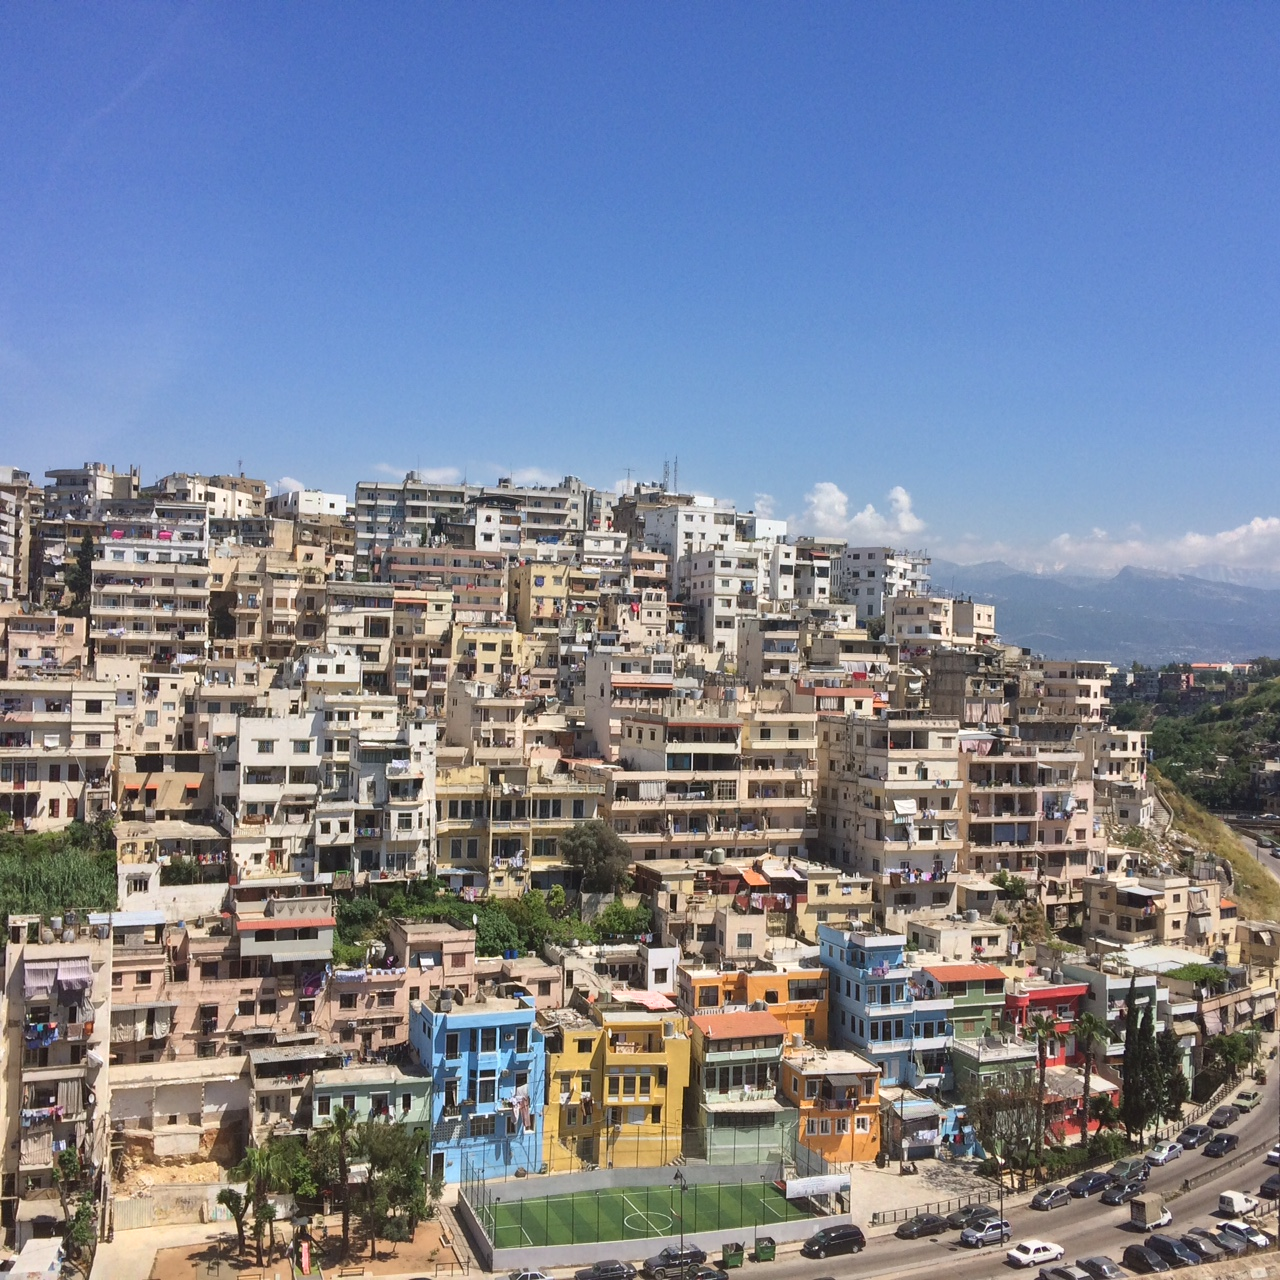 On a trip to Tripoli, Lebanon